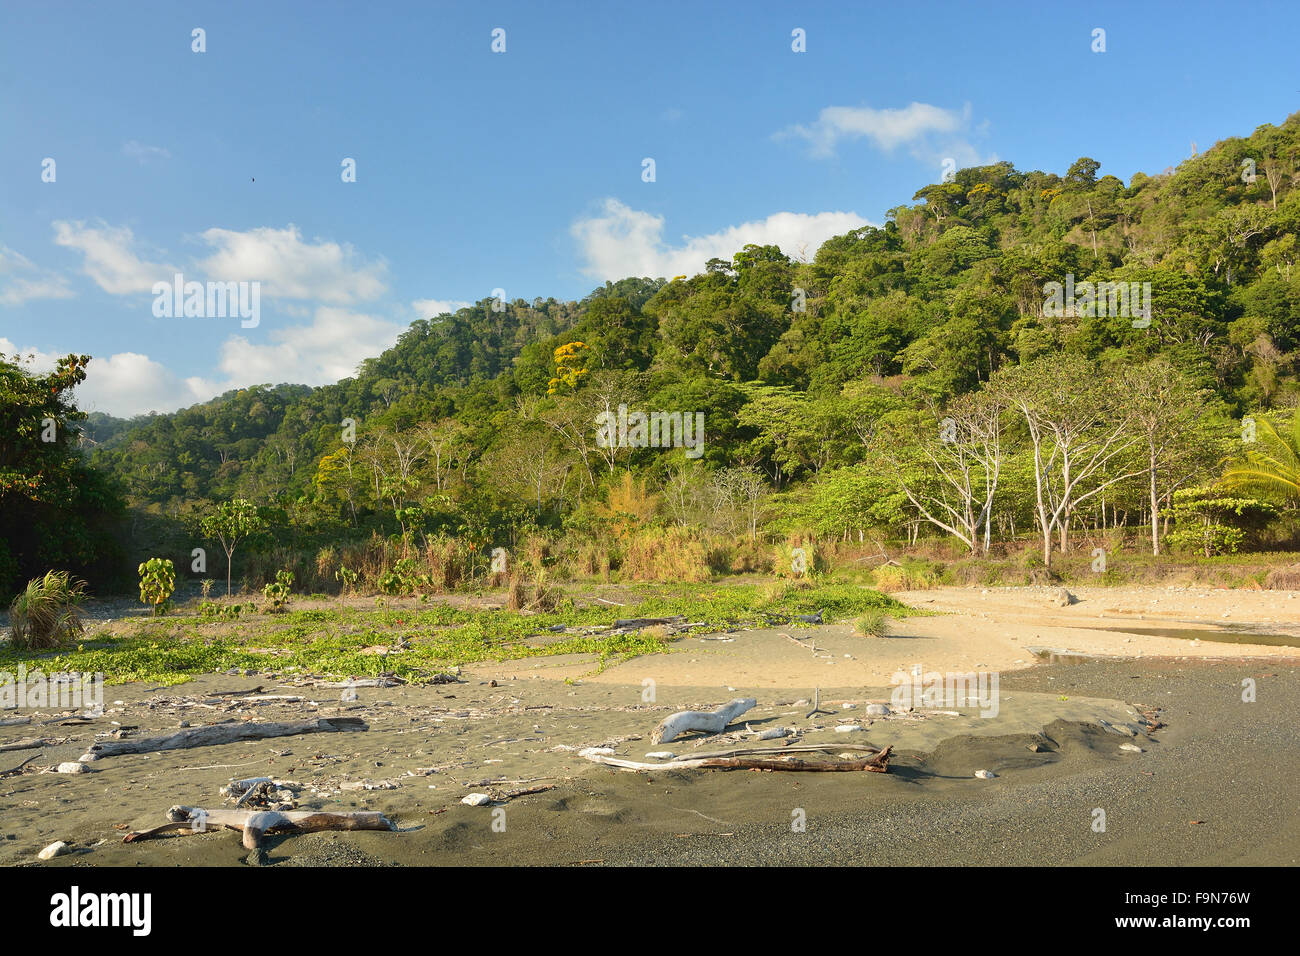 Beach in Corcovado National Park Costa Rica - Stock Image